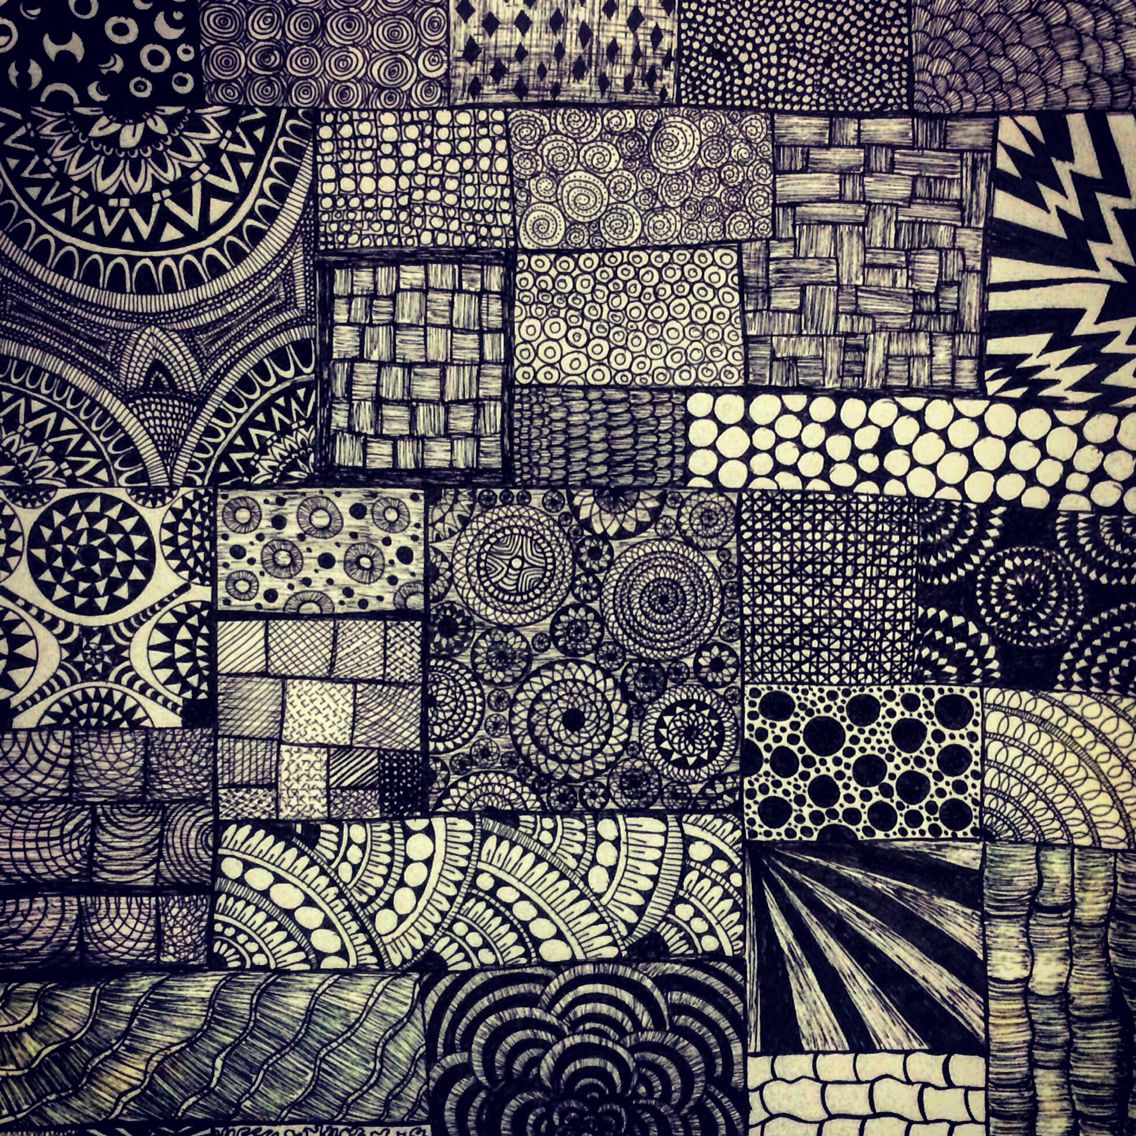 One of my doodle art